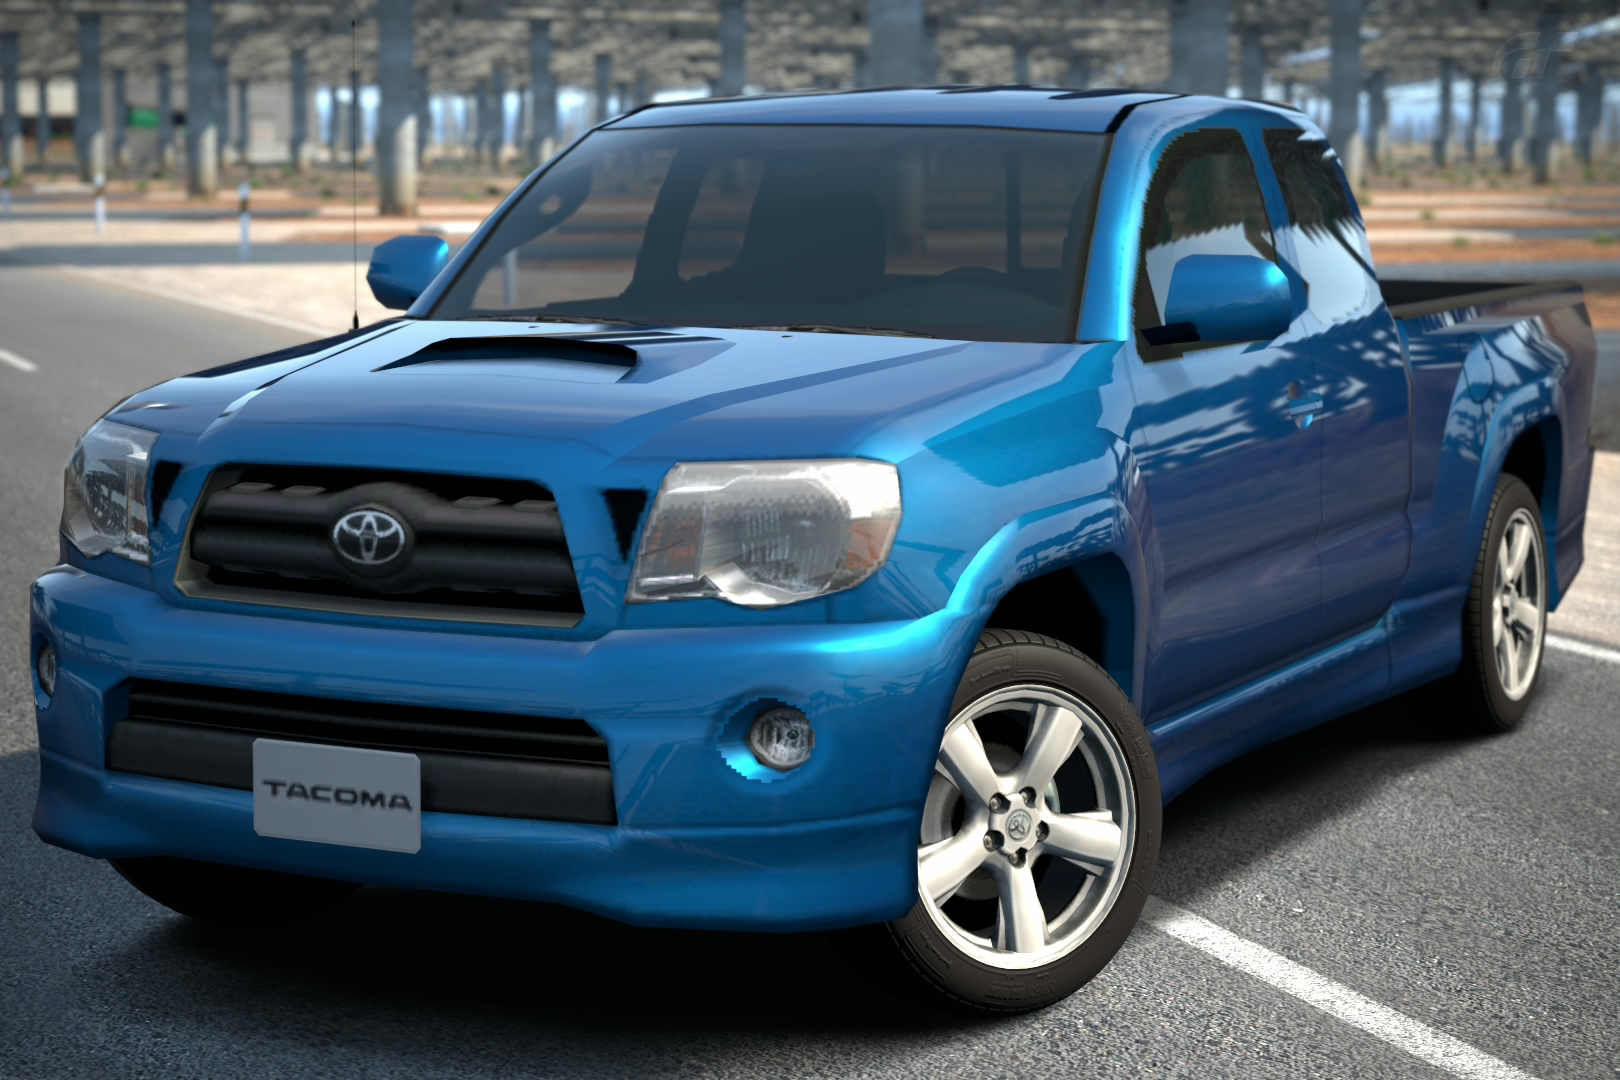 Toyota Tacoma X Runner 04 Gran Turismo Wiki Fandom Powered By Wikia